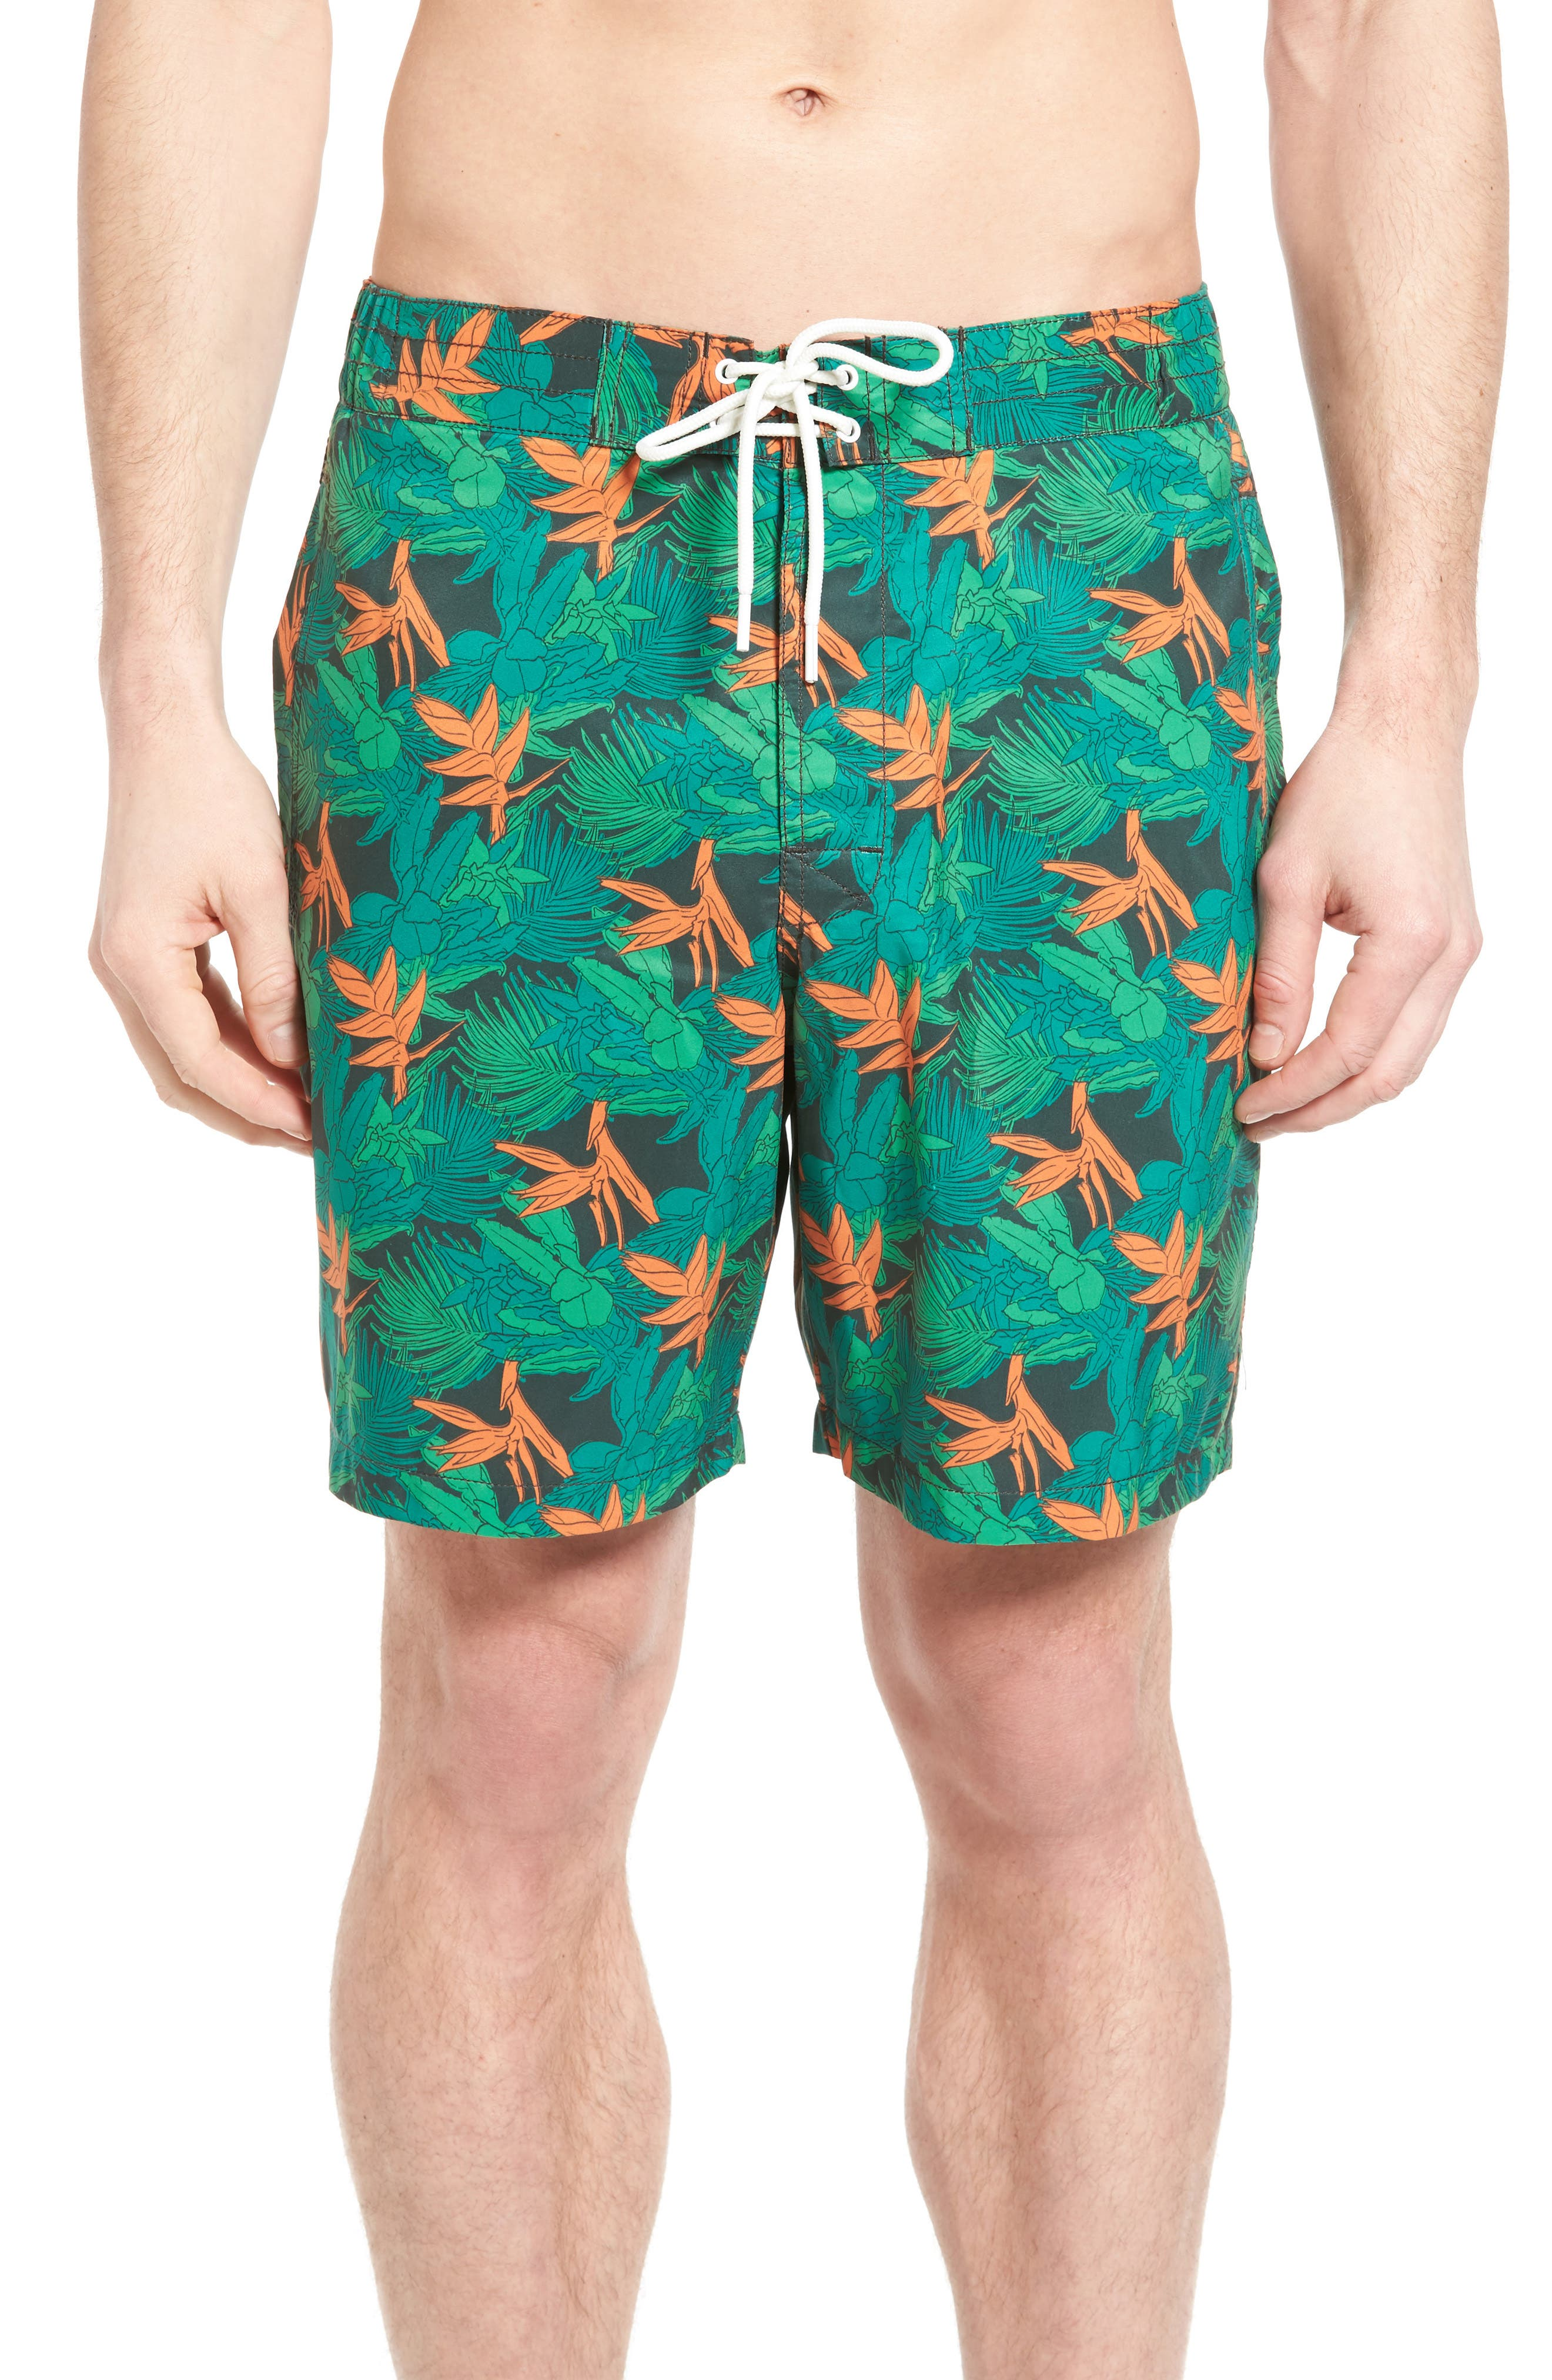 Rodd & Gunn Snells Beach Print Swim Trunks